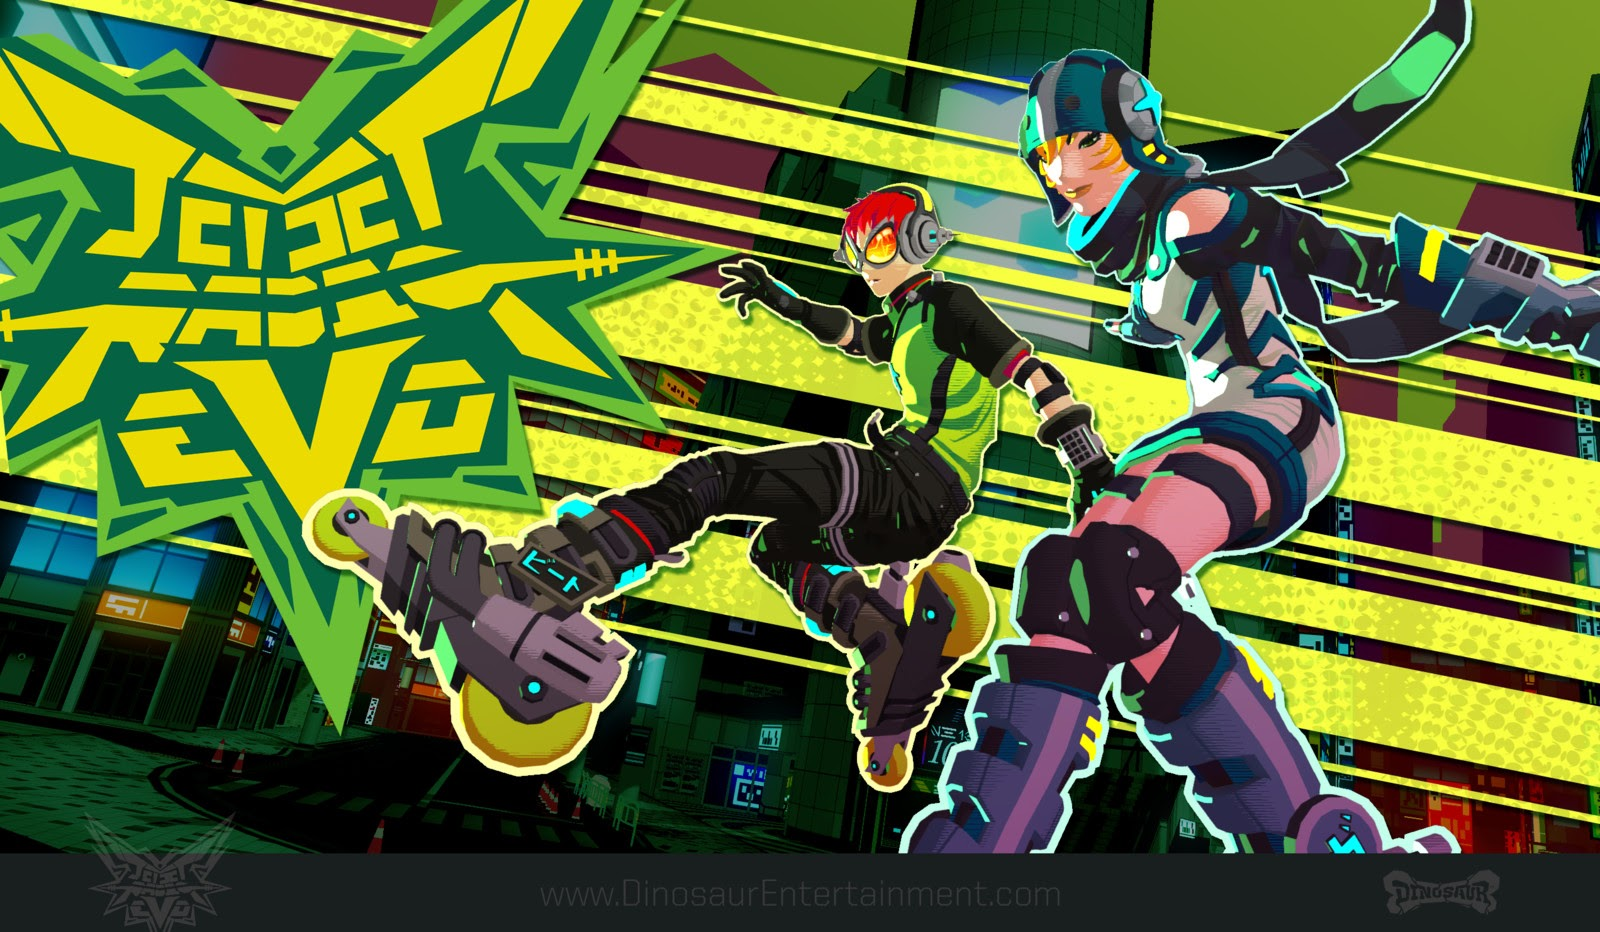 A screenshot of two characters from Jet Set Radio Evo, looking all cool and skating in front of dynamic green title art